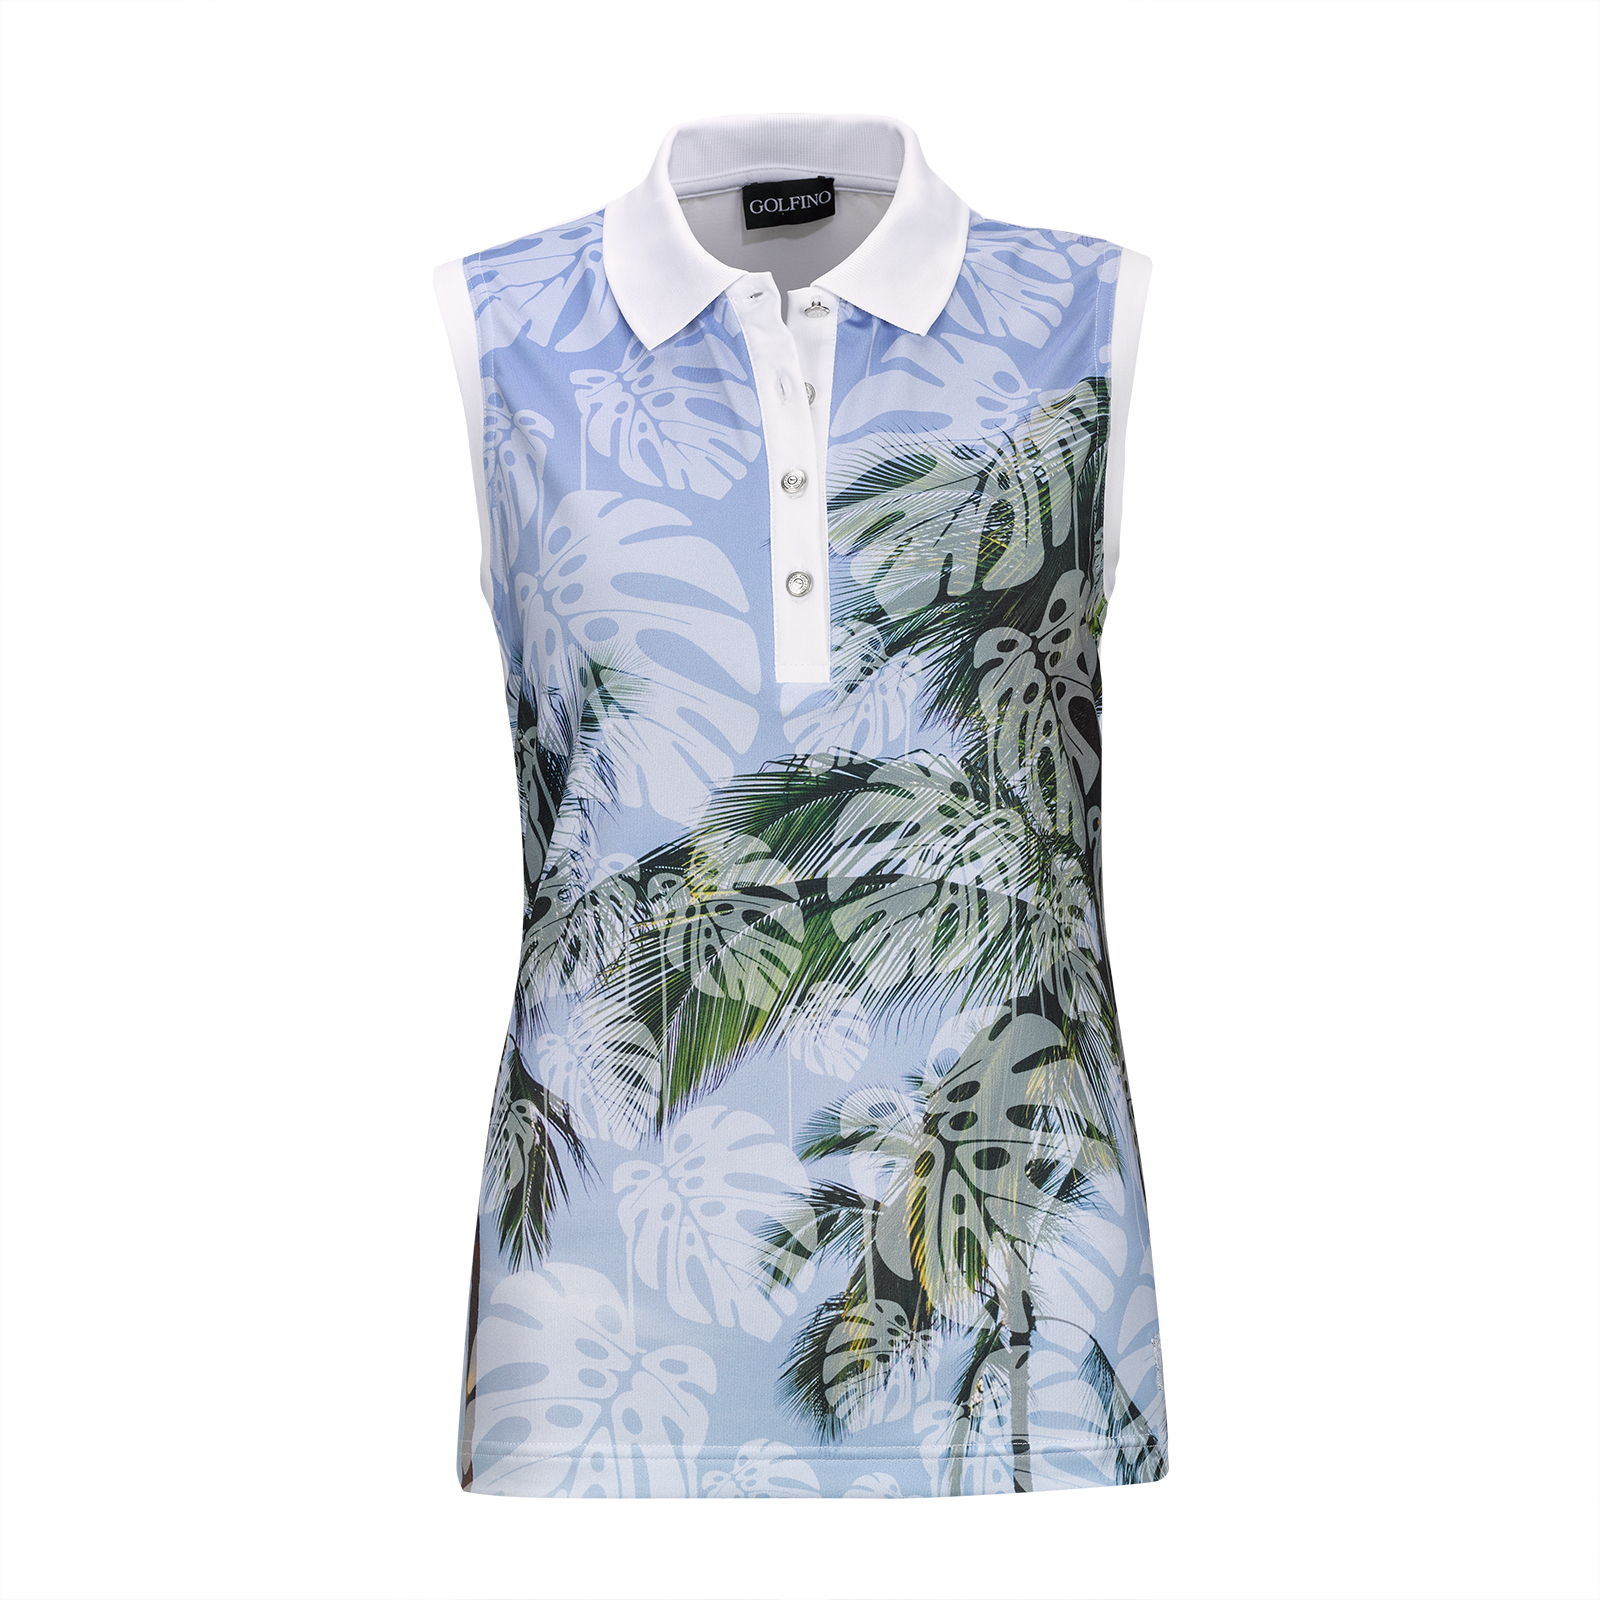 Sleeveless Palm Beach Ladies' Short Sleeve Golf Polo with print and stretch function